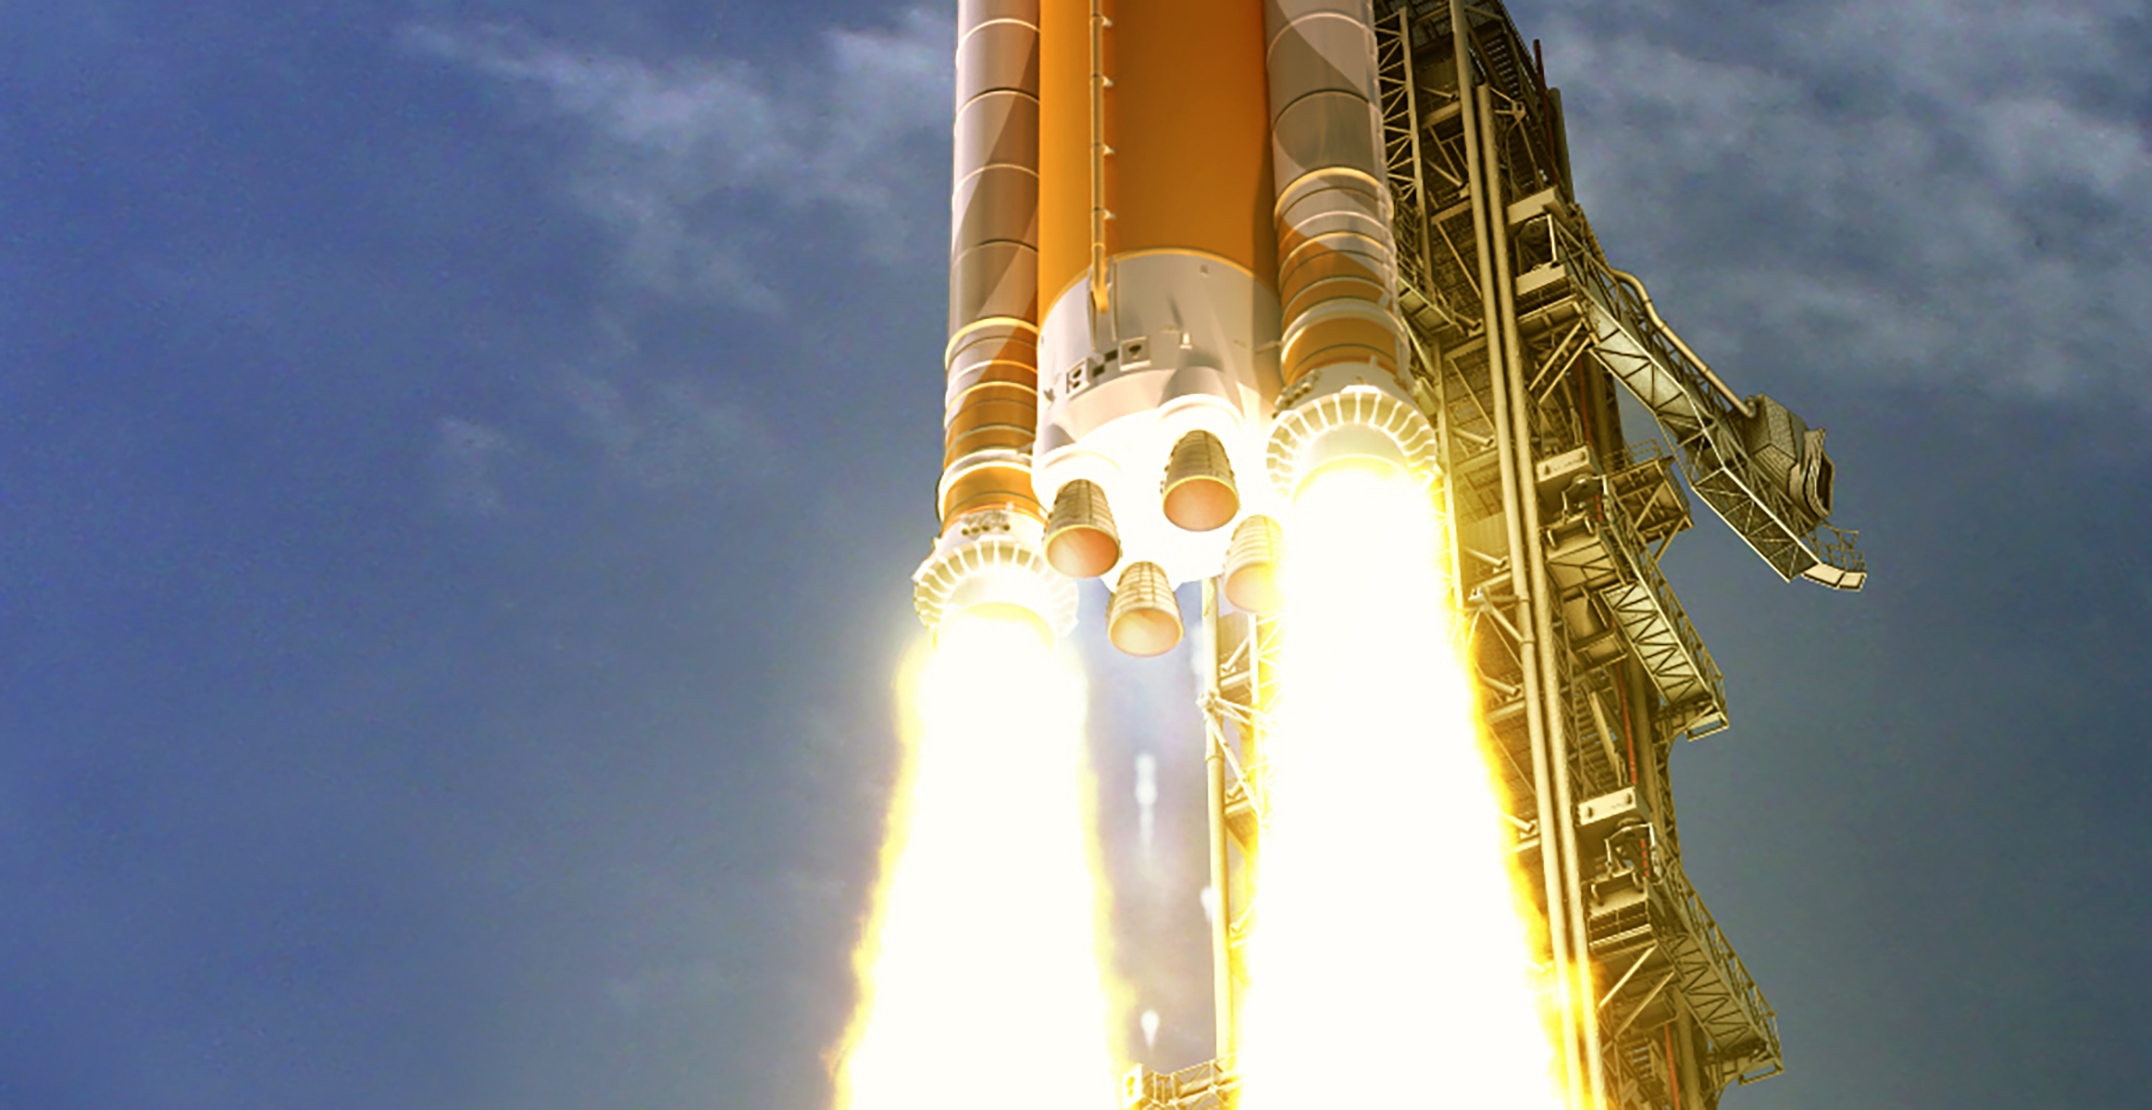 sls-70mt-dac3-orange-launch-rs25_0.jpg